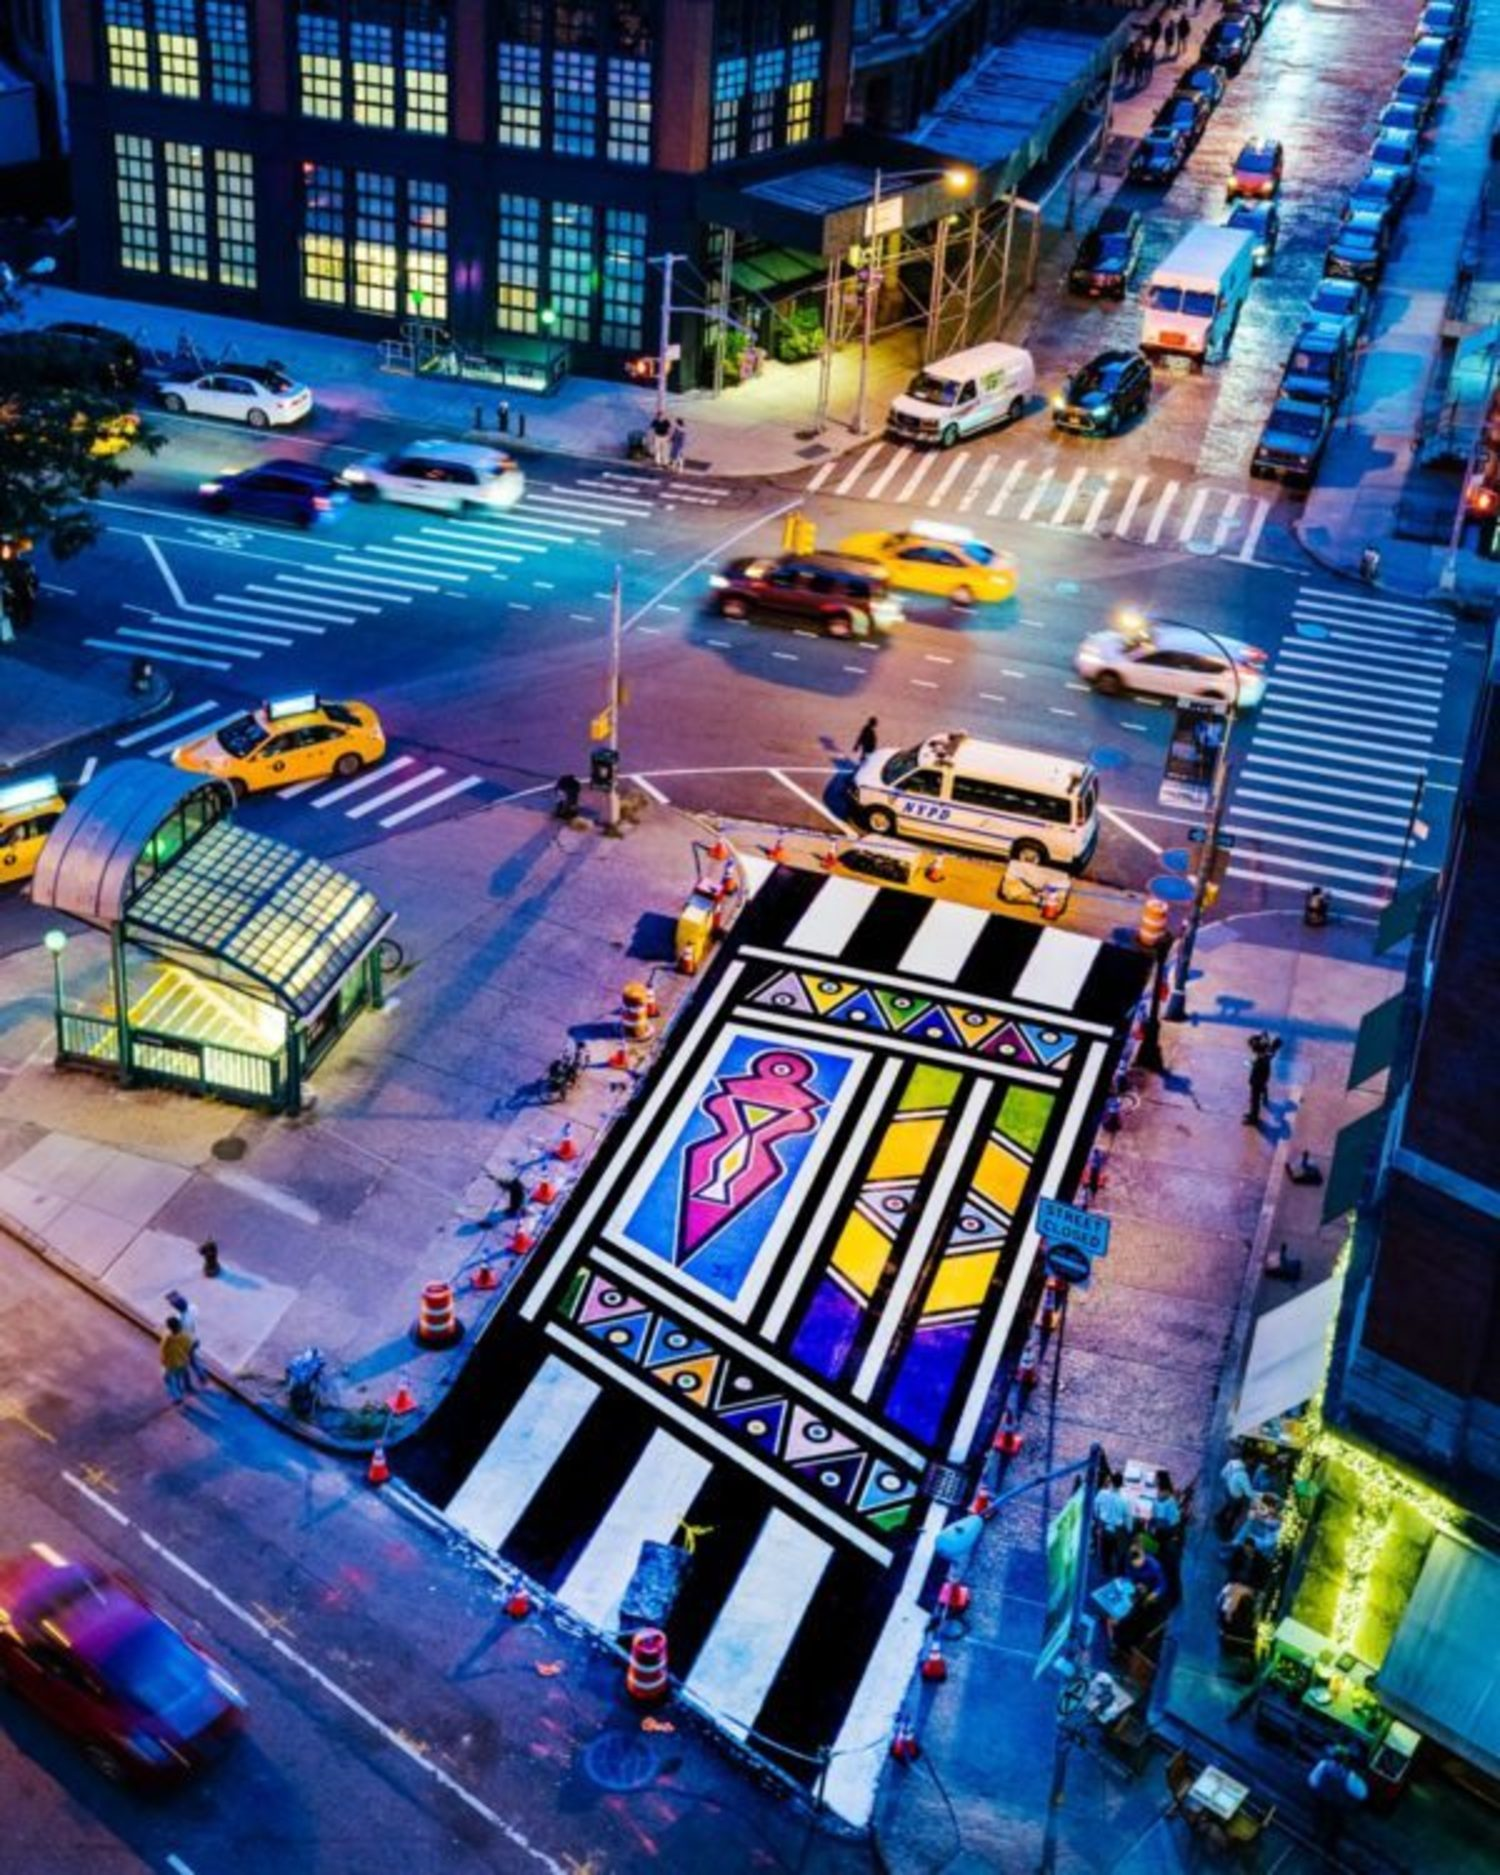 Real street art: Painted pavement beautifies Tribeca street